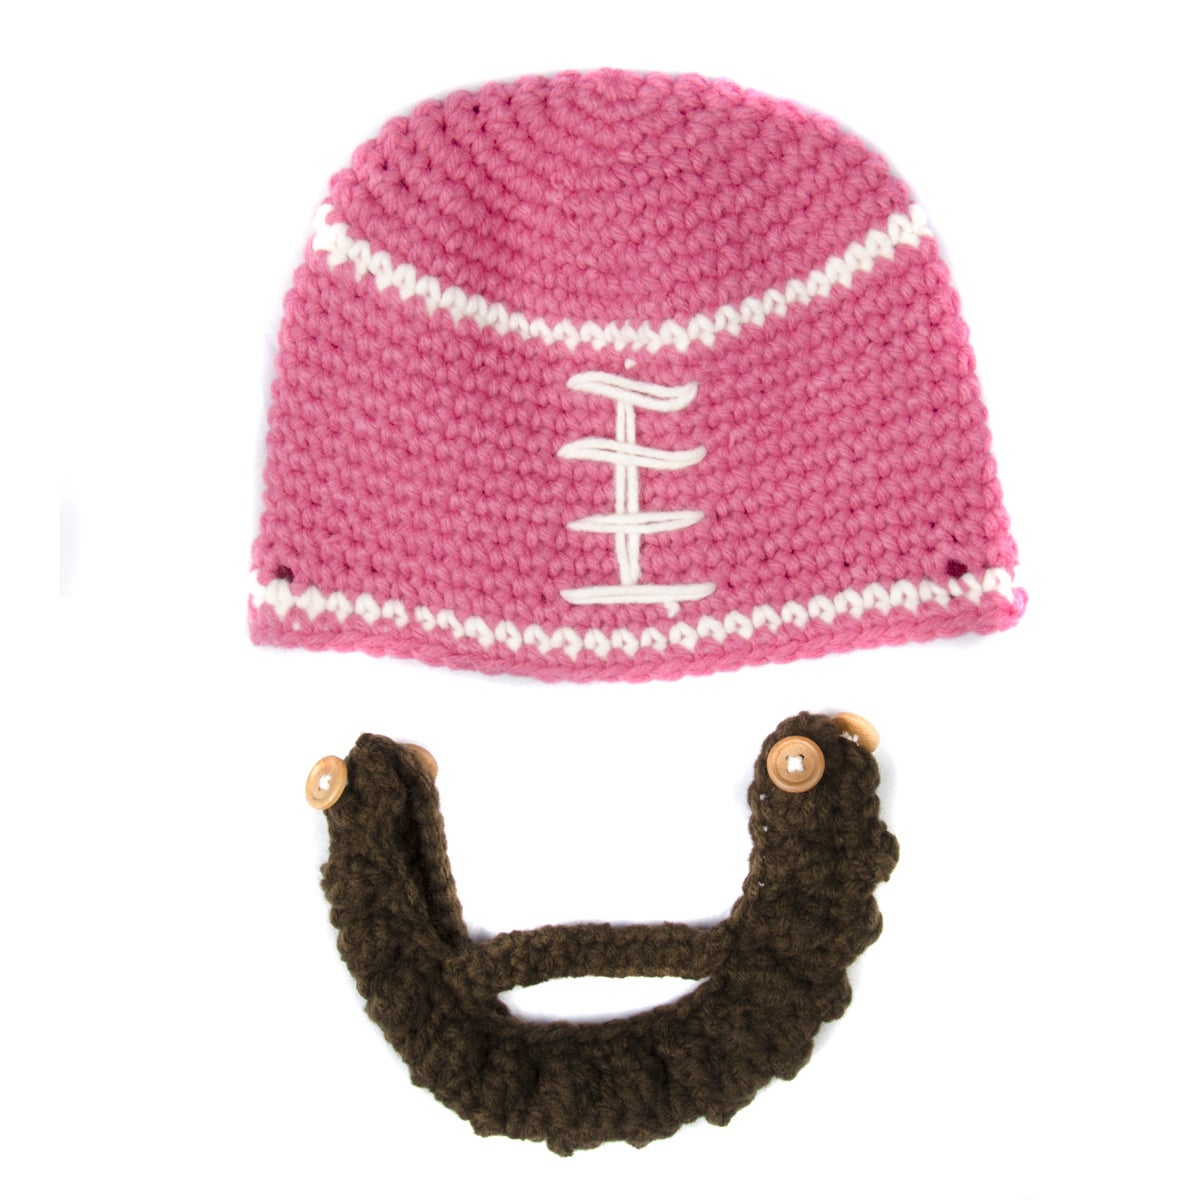 79e67778819 Shop Crummy Bunny Children s Hand Knit Pink Football Beanie with Removable  Beard - Free Shipping On Orders Over  45 - Overstock - 10352825